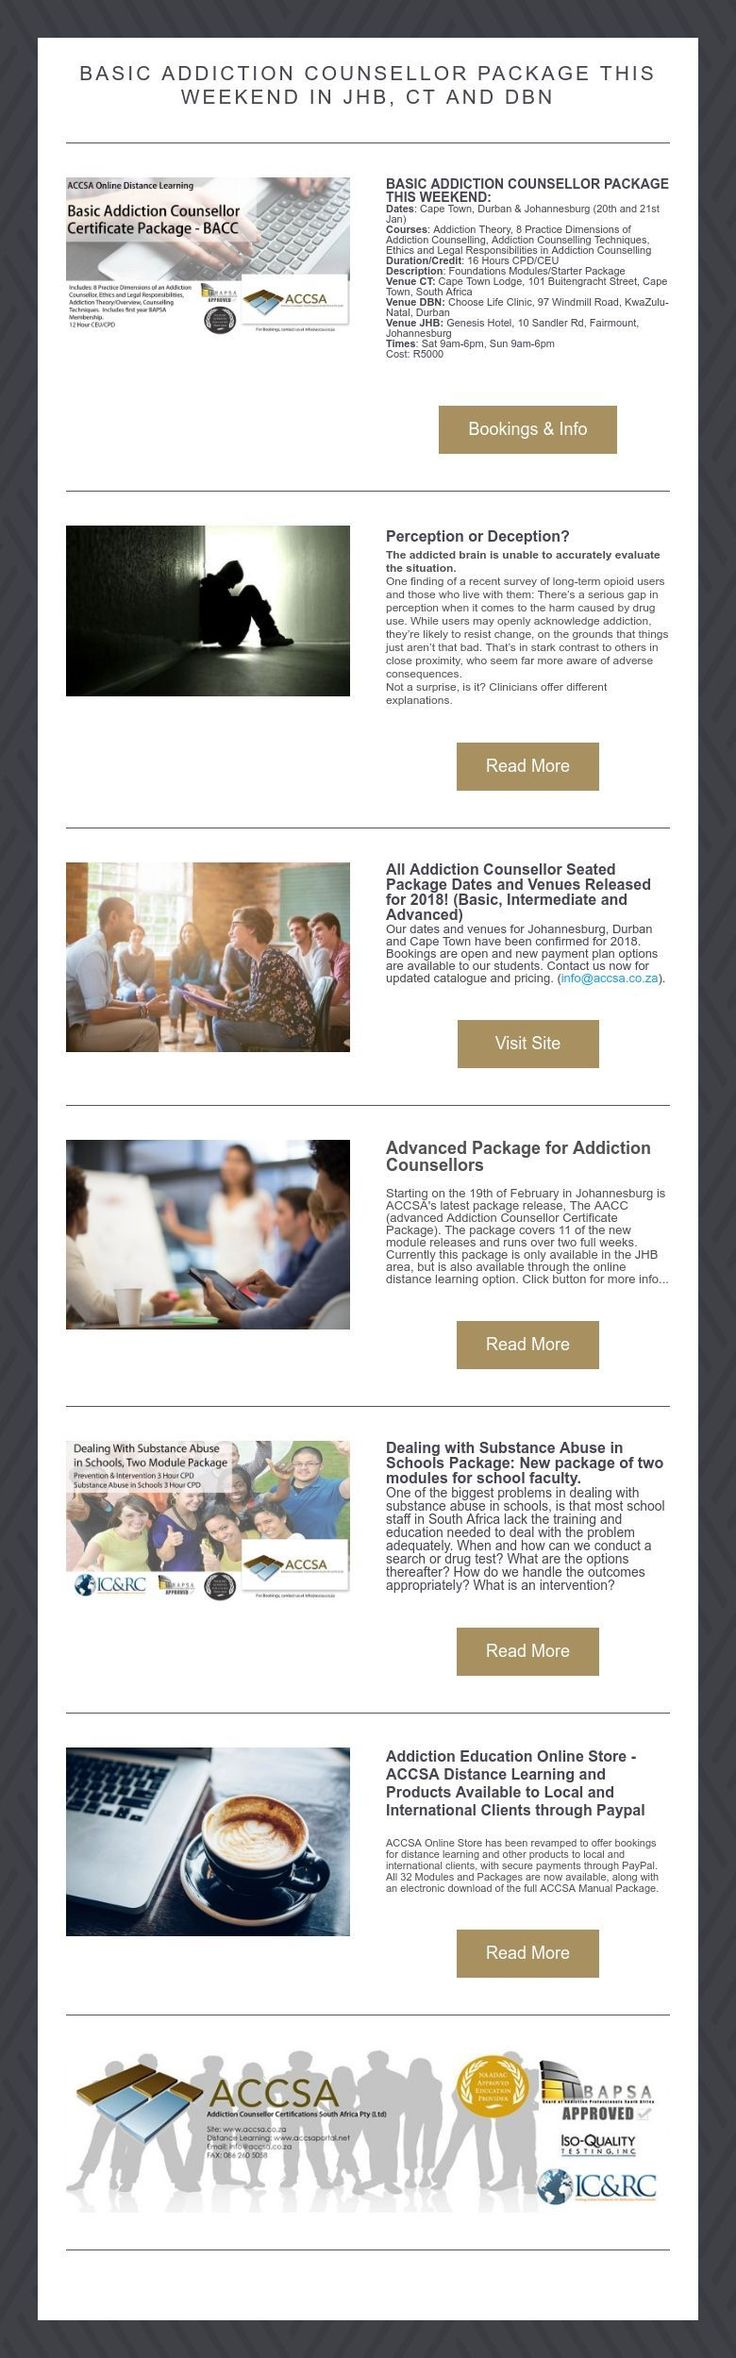 Basic Addiction counsellor package this weekend in jhb, ct and dbn